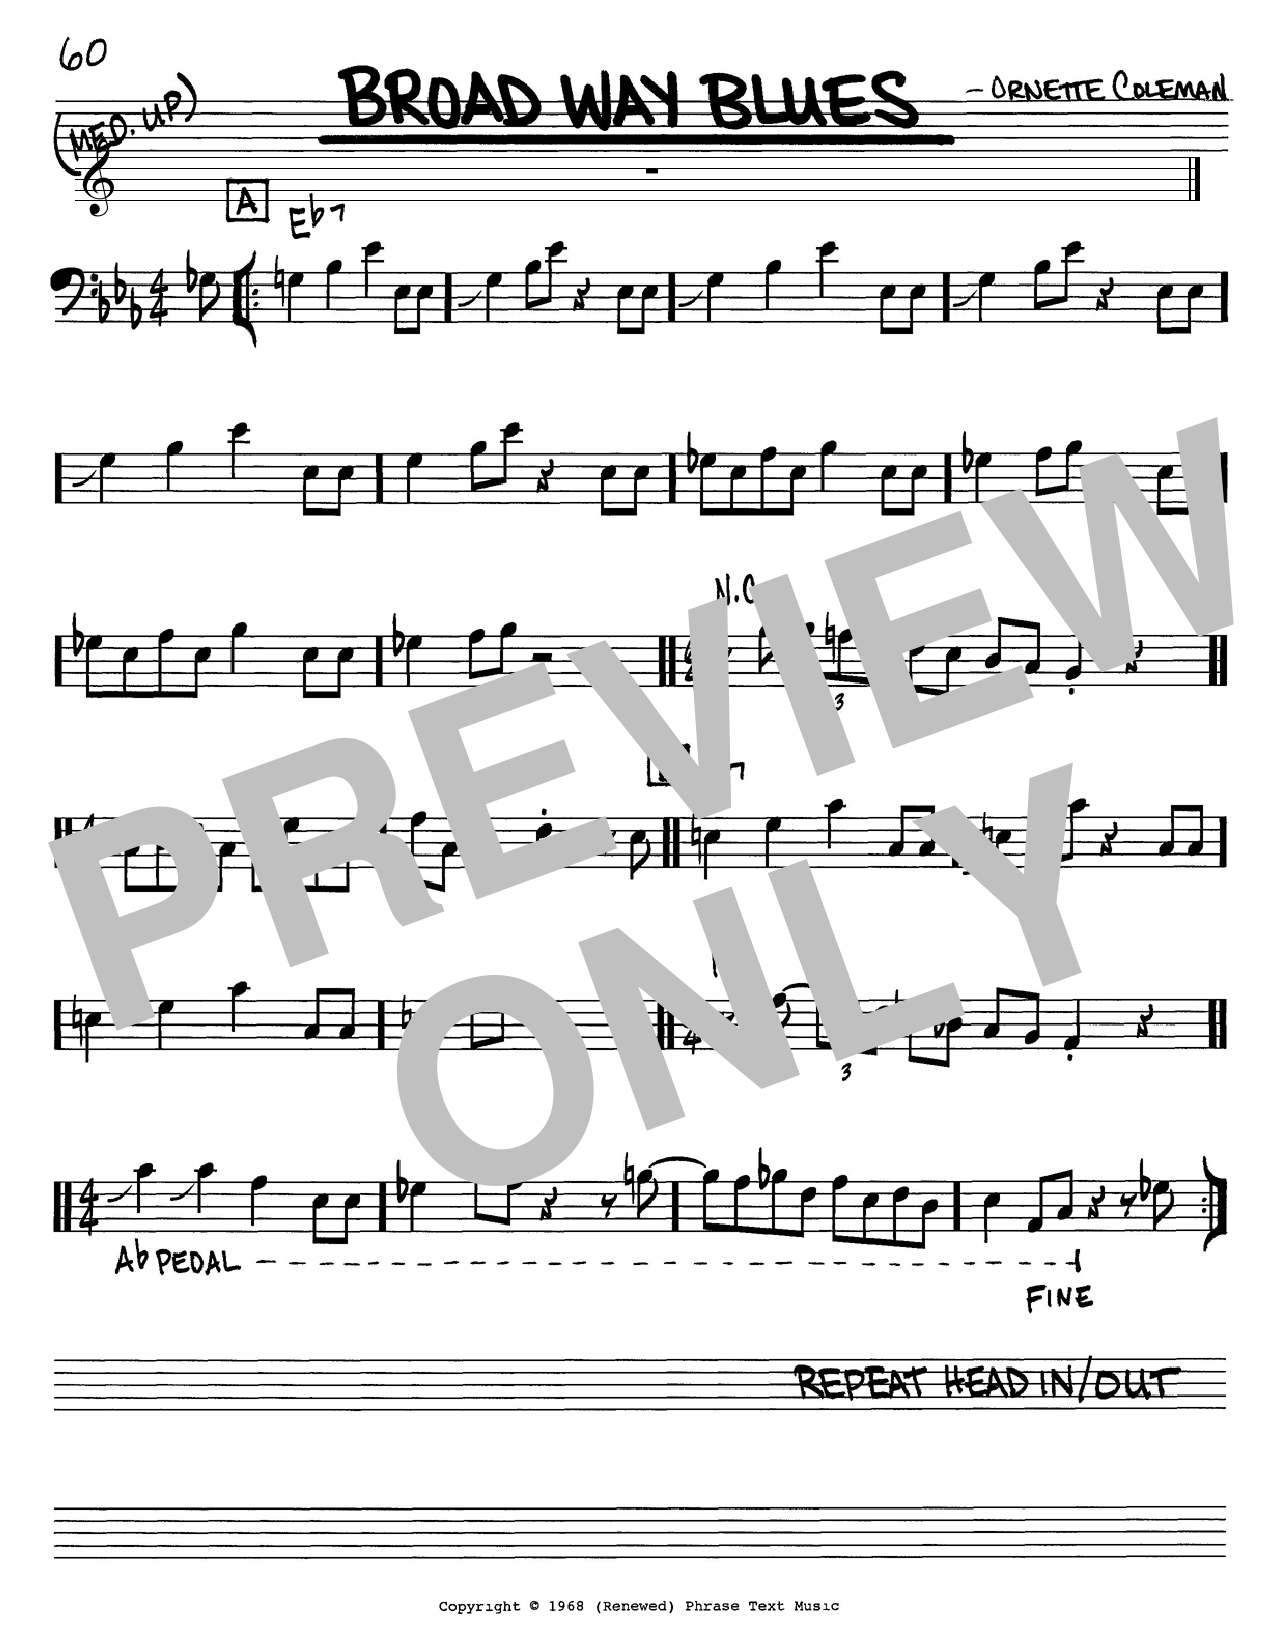 Ornette Coleman Broad Way Blues sheet music notes and chords. Download Printable PDF.